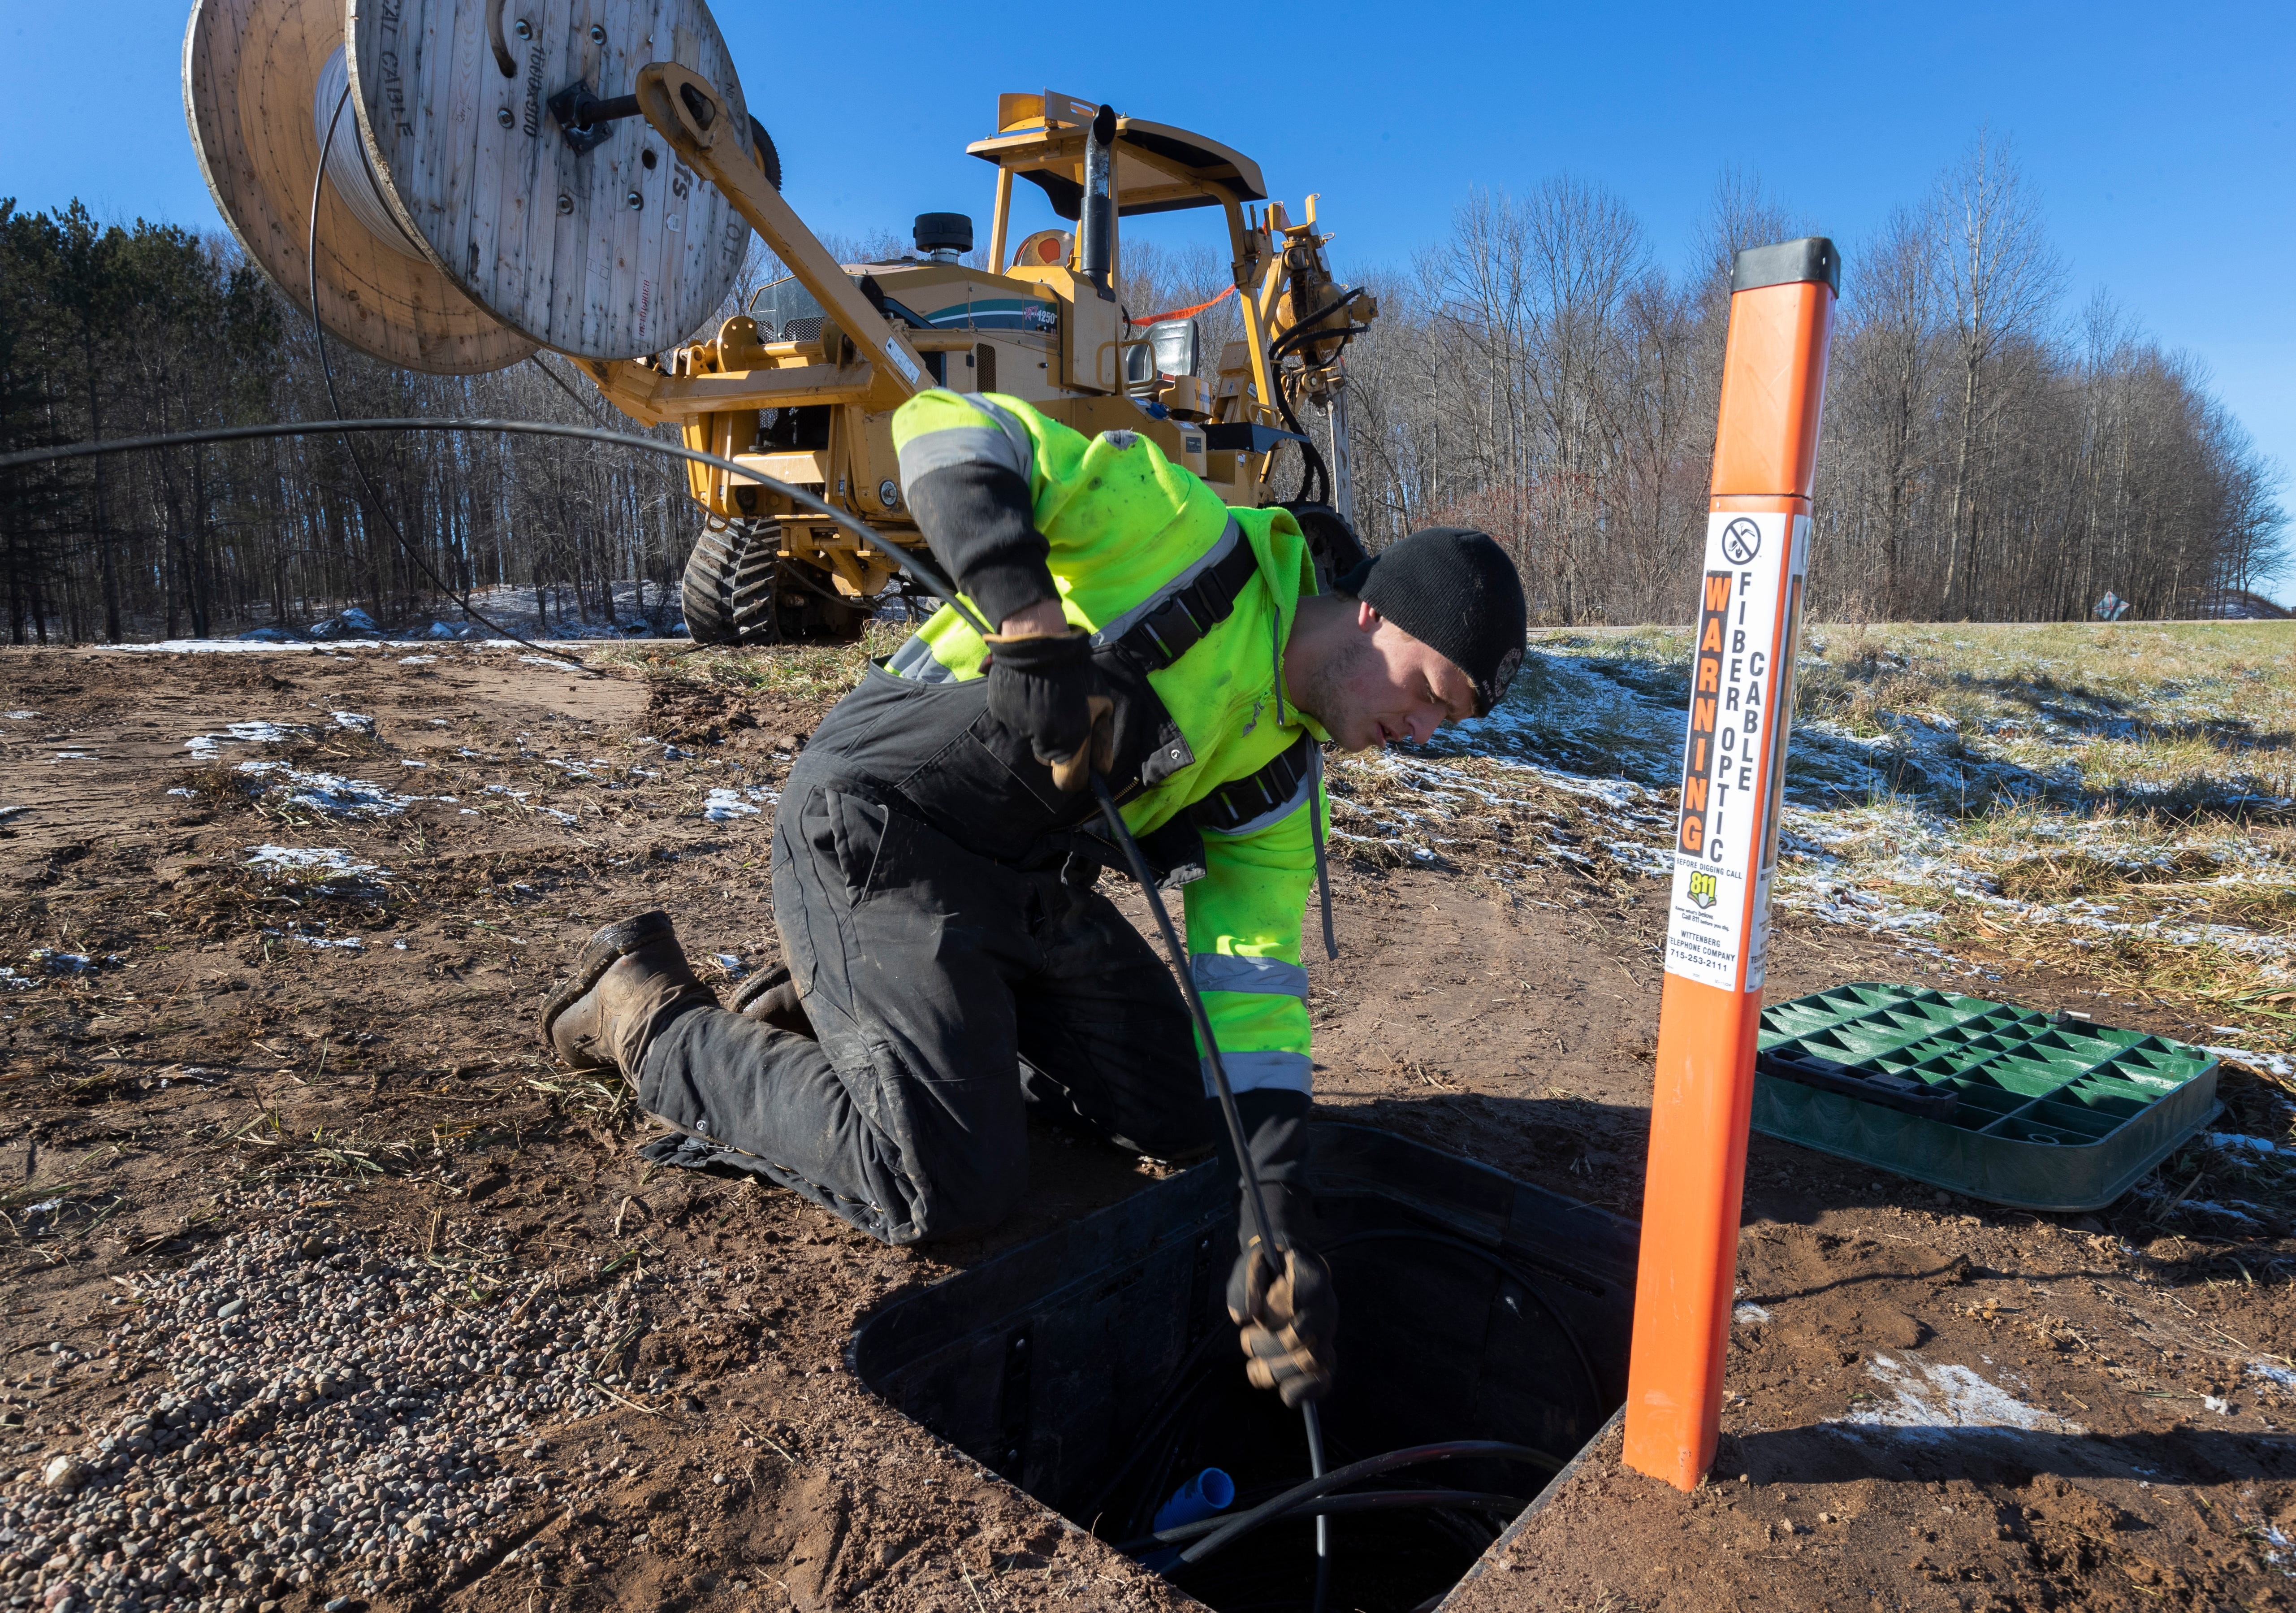 Kegan Hackbarth installs fiber-optic lines in the Shawano County village of Bowler. The Wittenberg Telephone Co. is installing hundreds of miles of fiber-optic cable in the area.